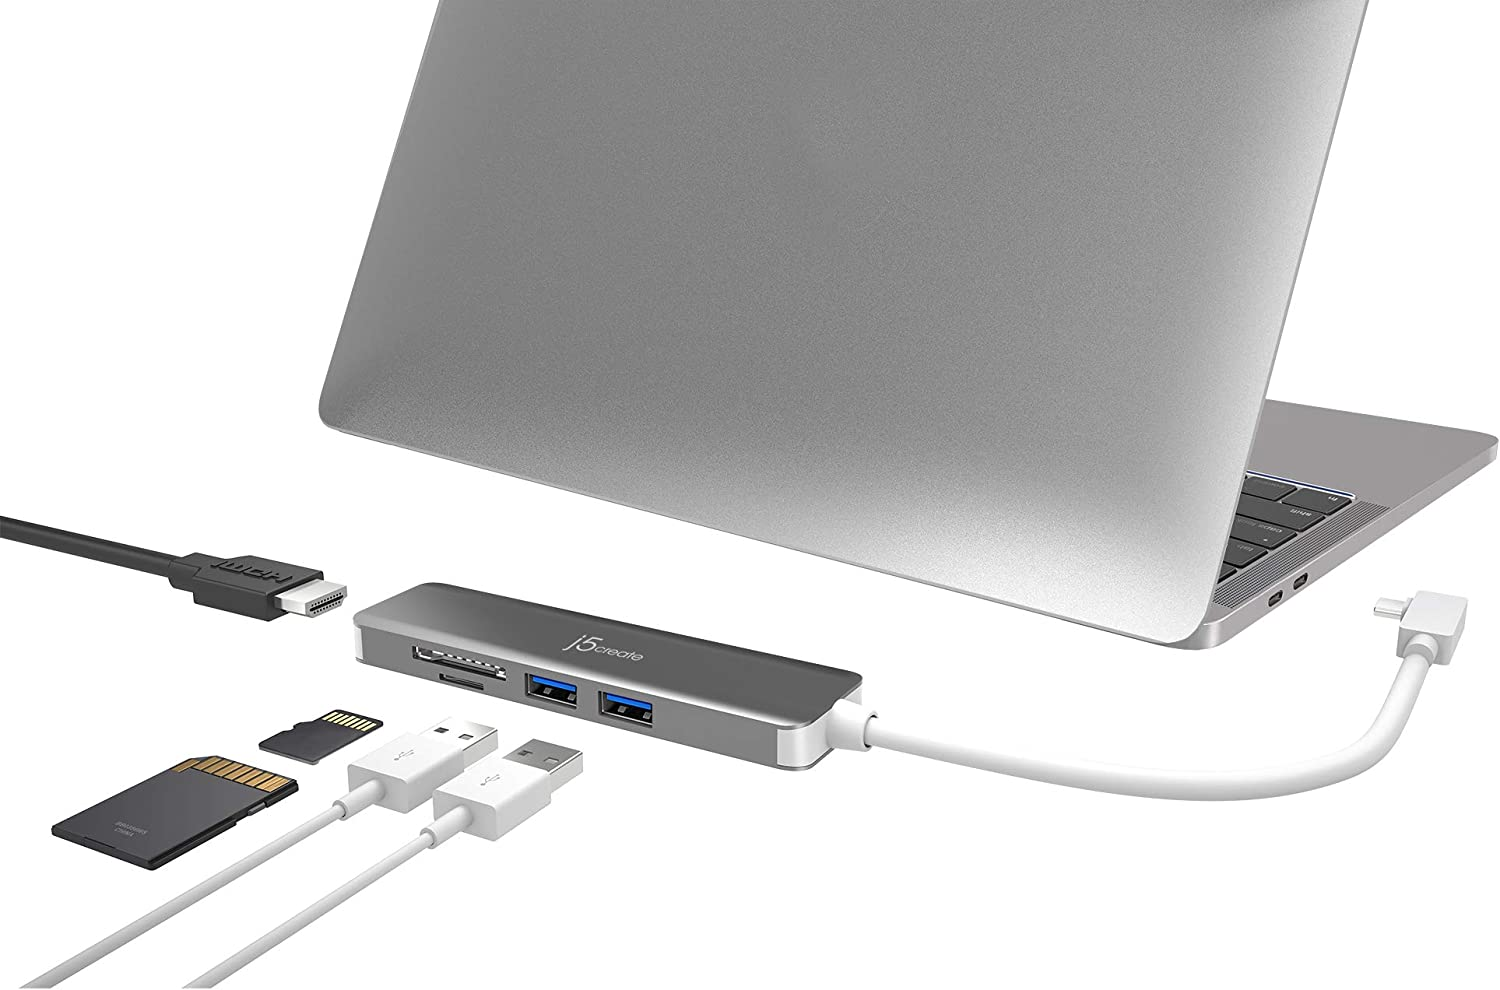 j5create 5 in 1 Compact USB-C Hub, Type C Adapter with 4K HDMI, 2 USB 3.0 Ports, SD and microSD Card Reader, for MacBook Pro, MacBook Air, XPS, Chromebook, and Other USB C Windows Laptops